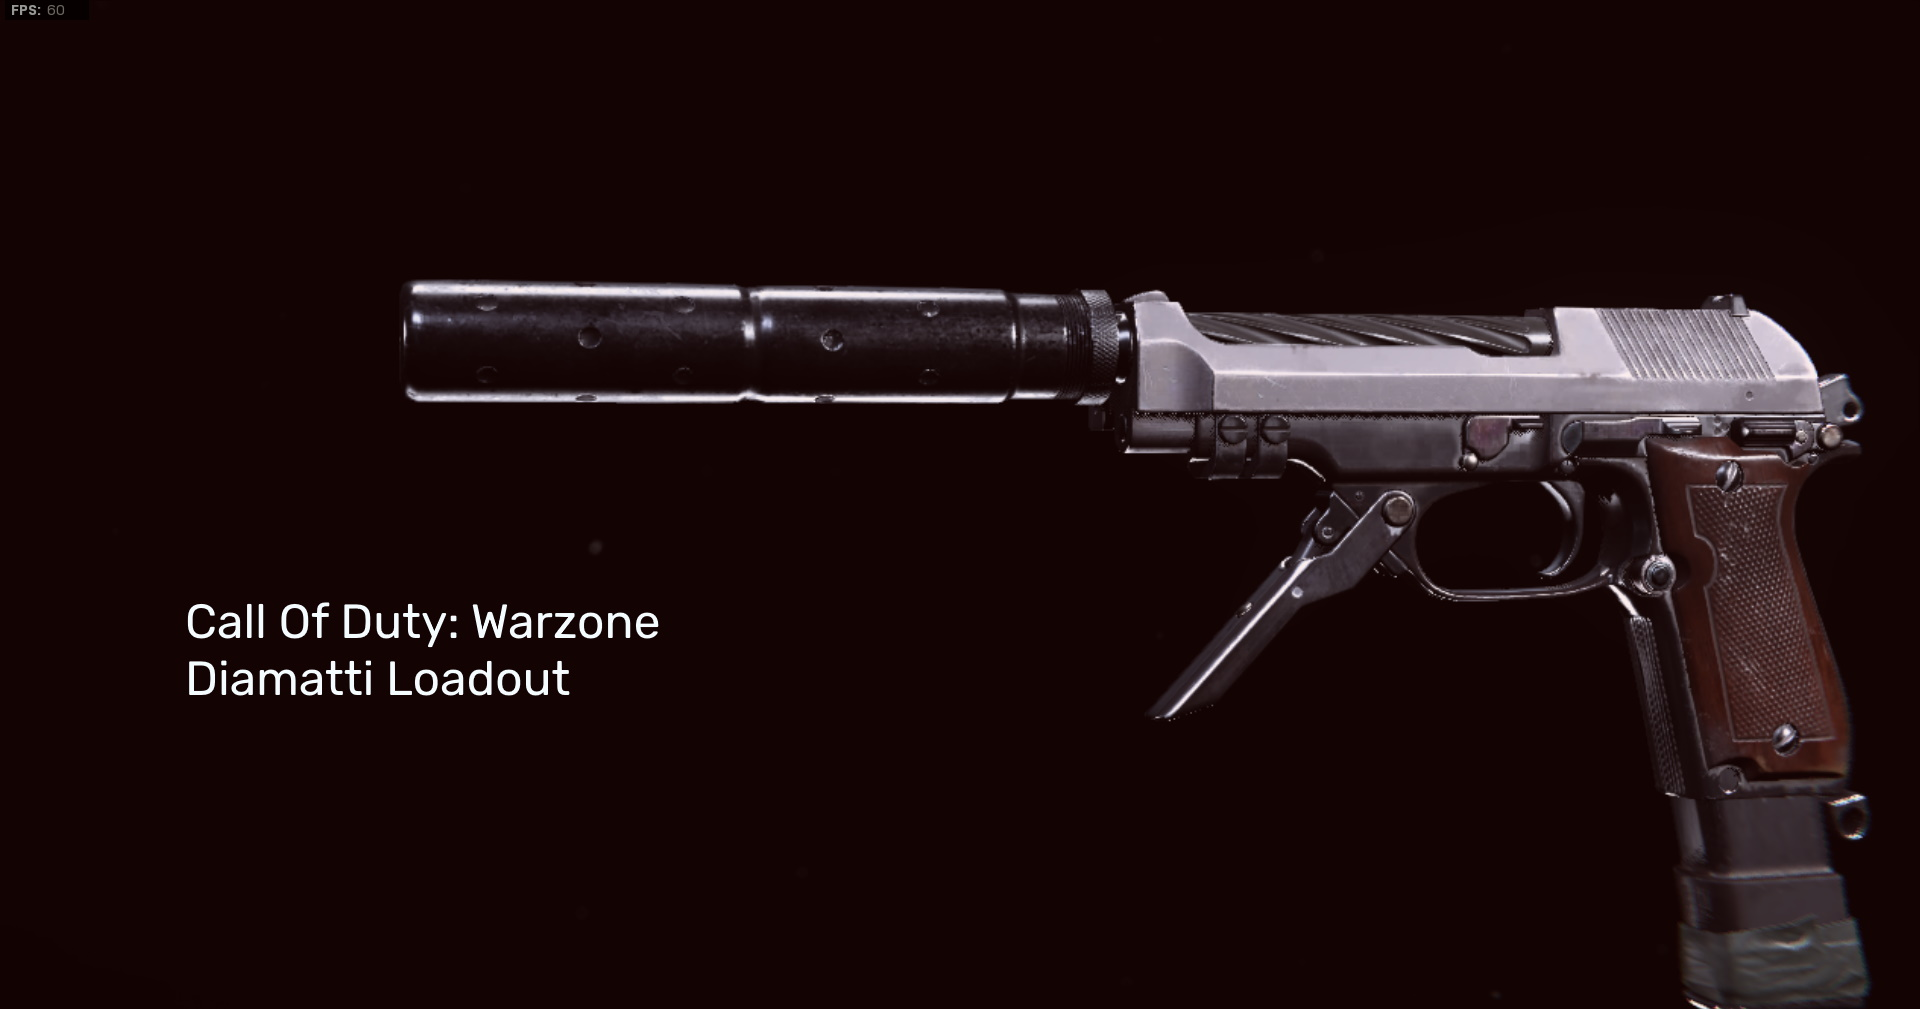 The Diamatti from COD: Warzone on a black background.